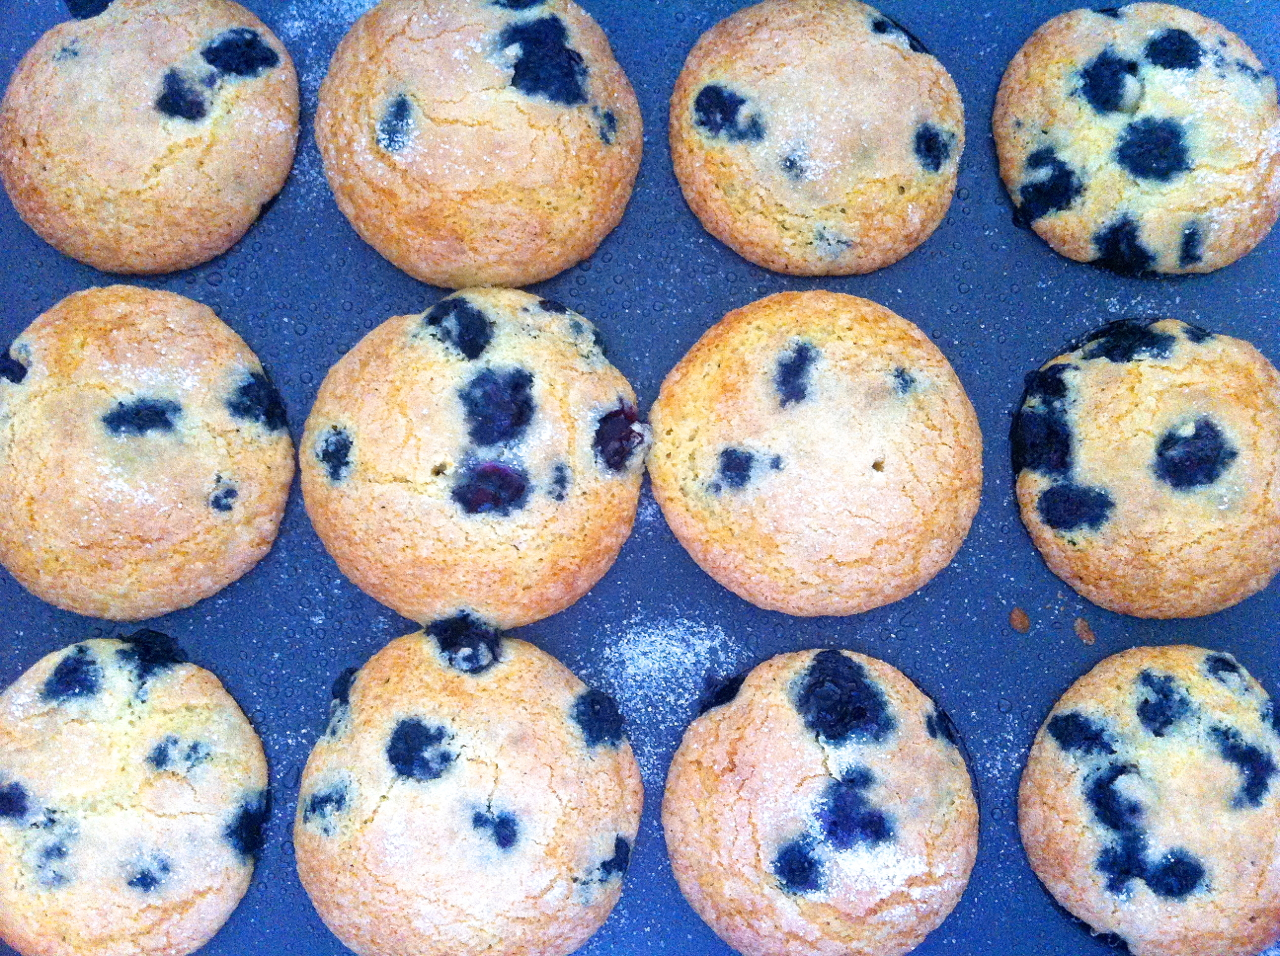 Homemade Blueberry Muffins From Scratch